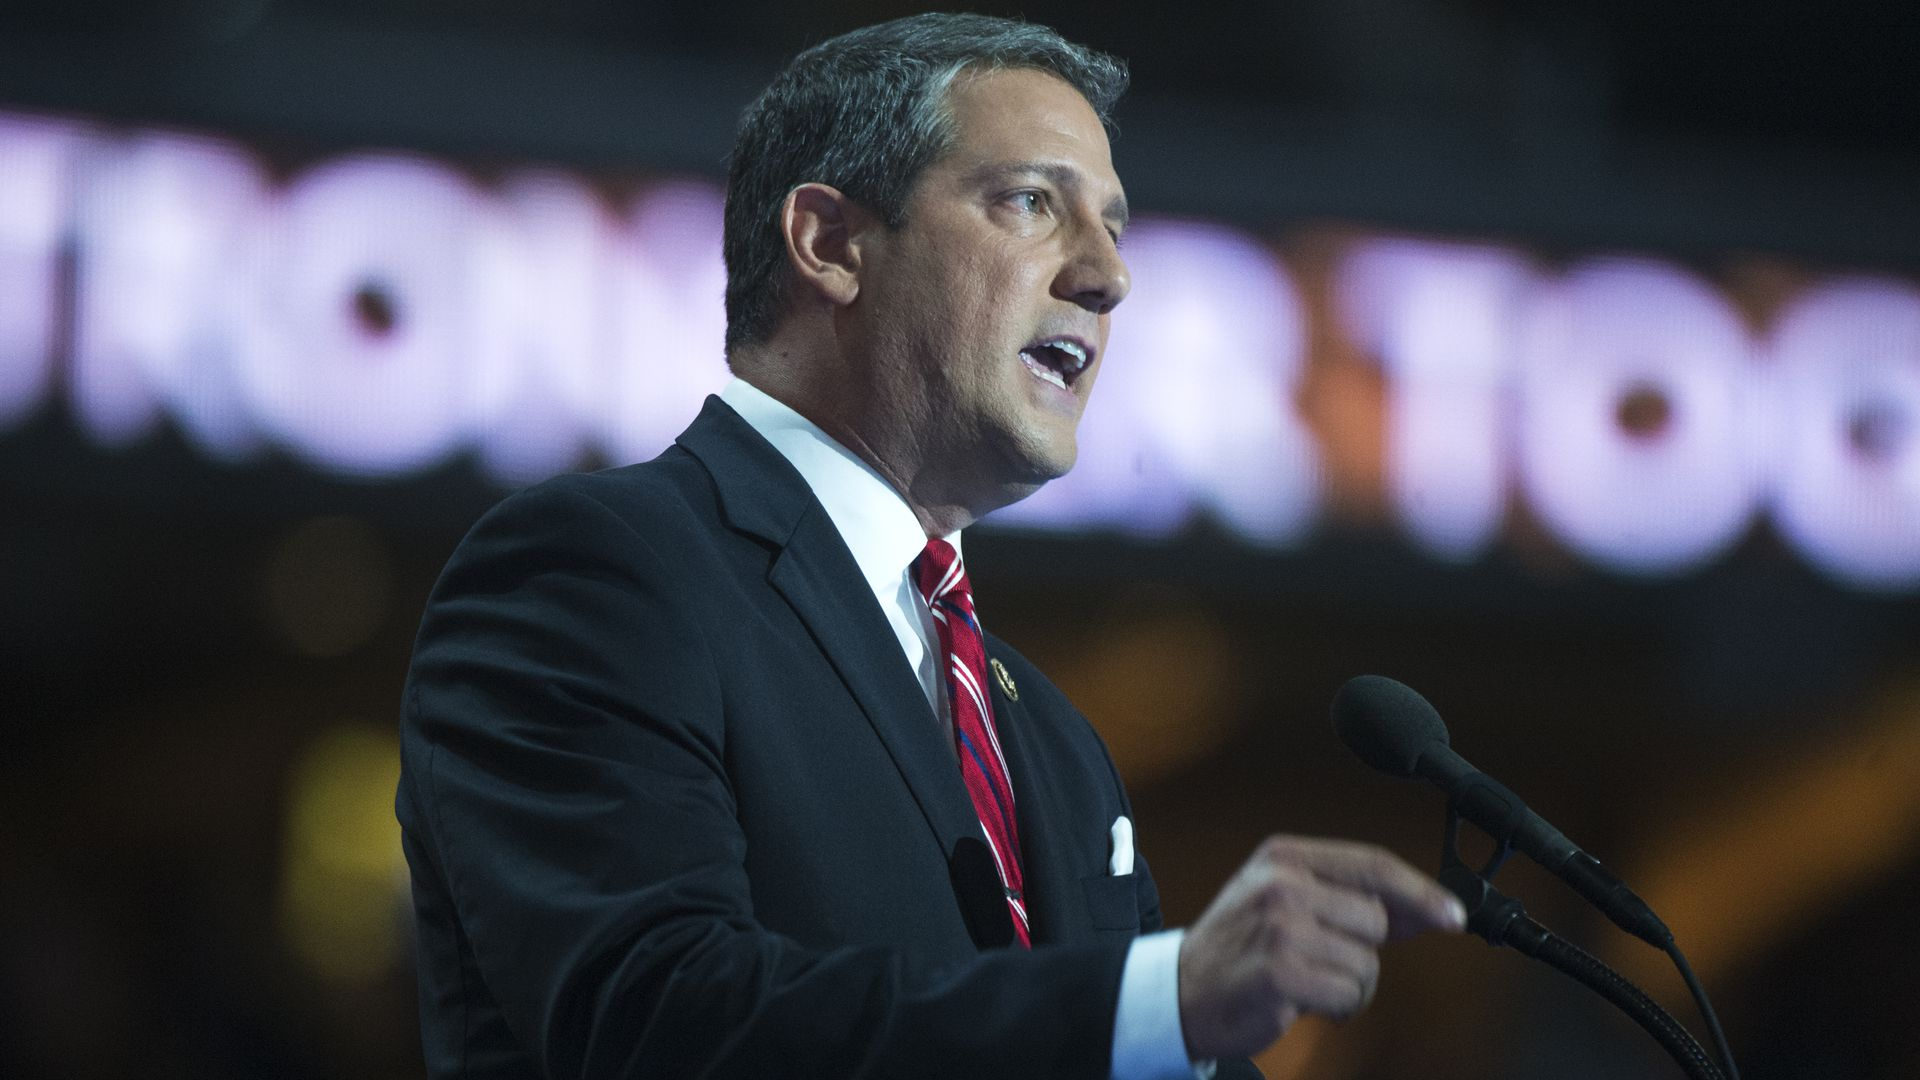 In this image, Tim Ryan speaks into a microphone on stage.